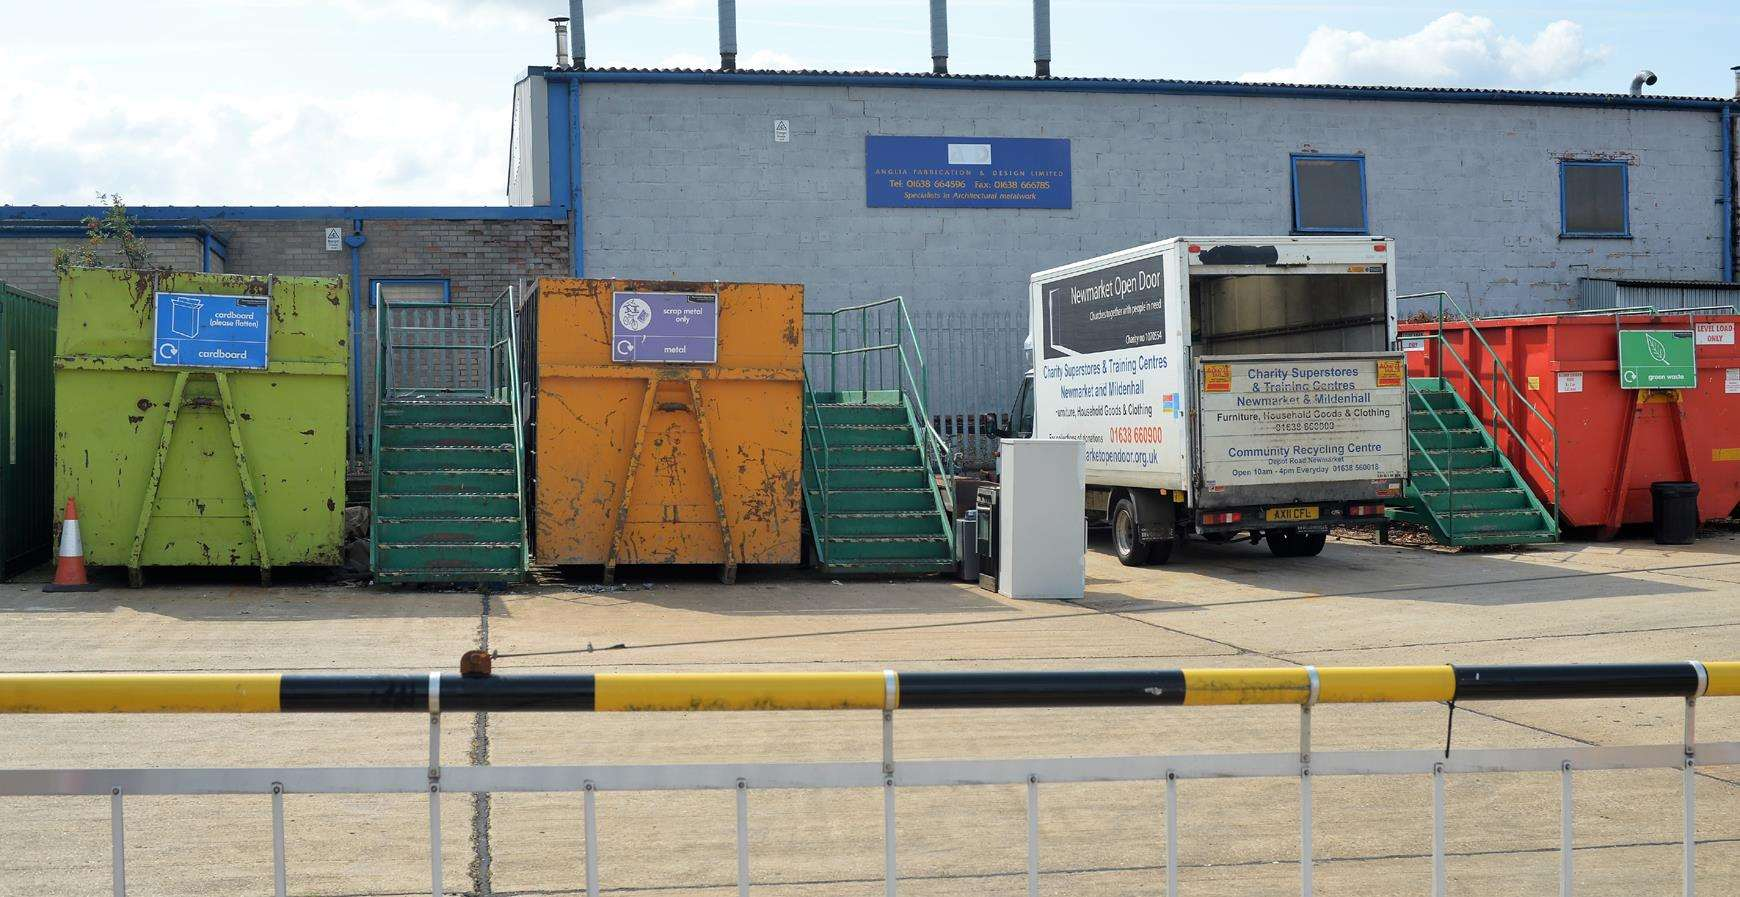 Newmarket Open Door had operated the site since 2011, when Suffolk County Council decided to close the facility